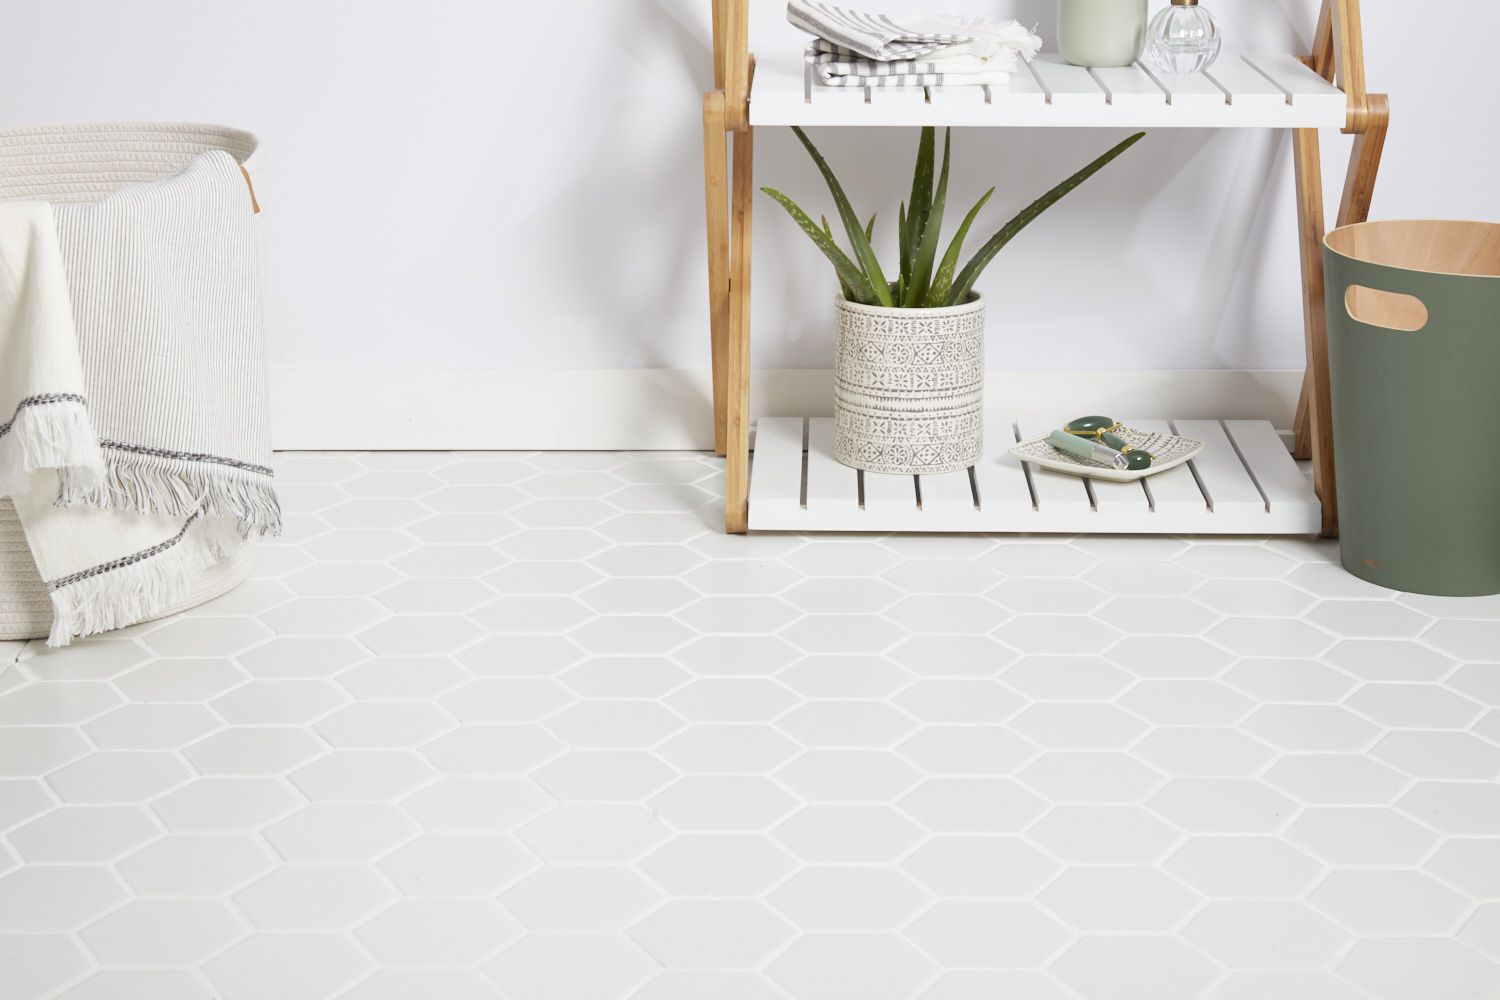 White tile flooring with wooden and white stand with houseplant next to hamper